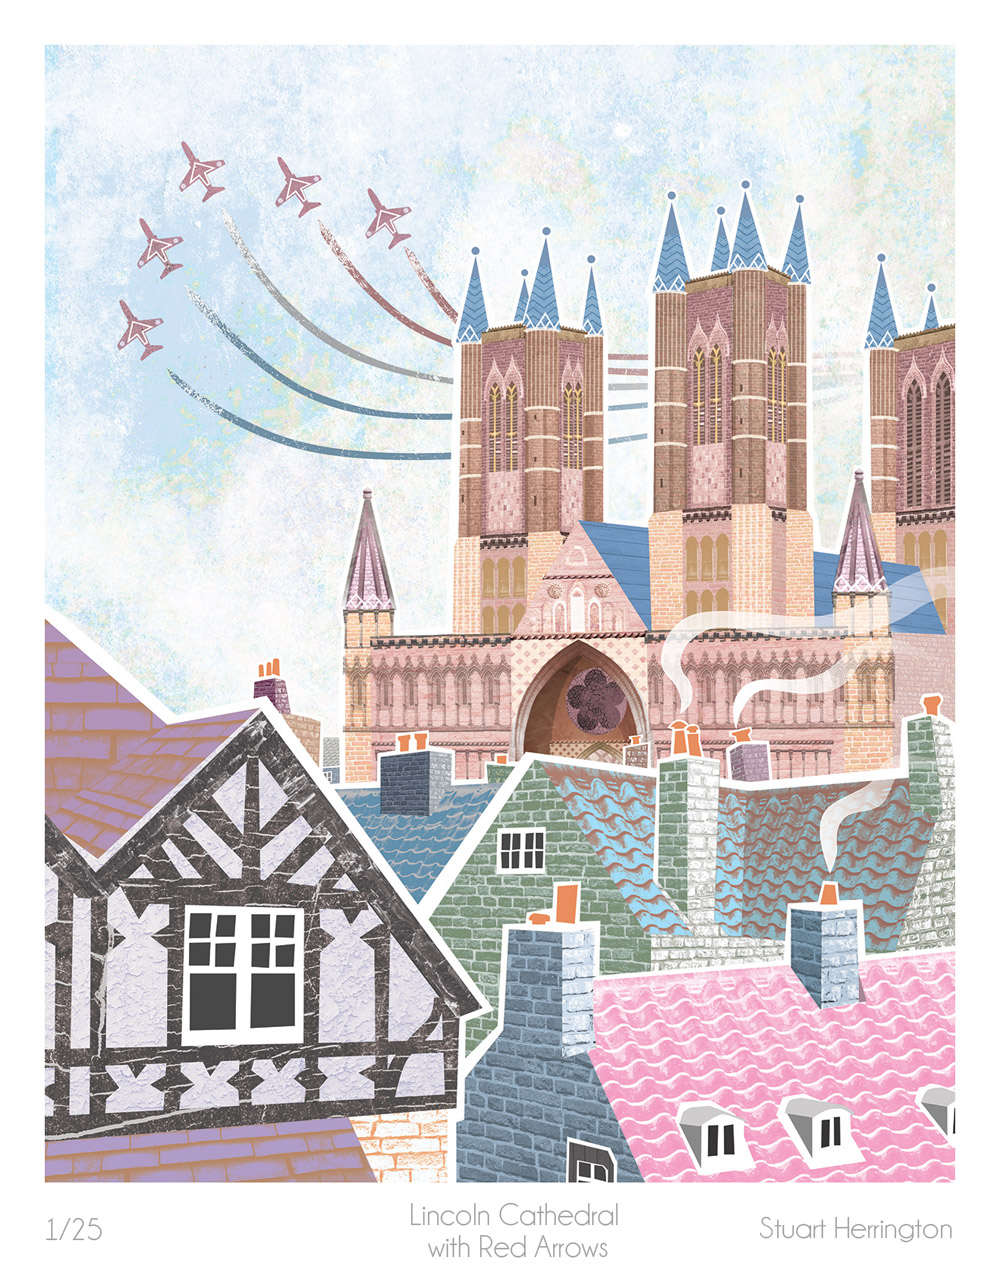 Lincoln Cathedral with Red Arrows by Stuart Herrington